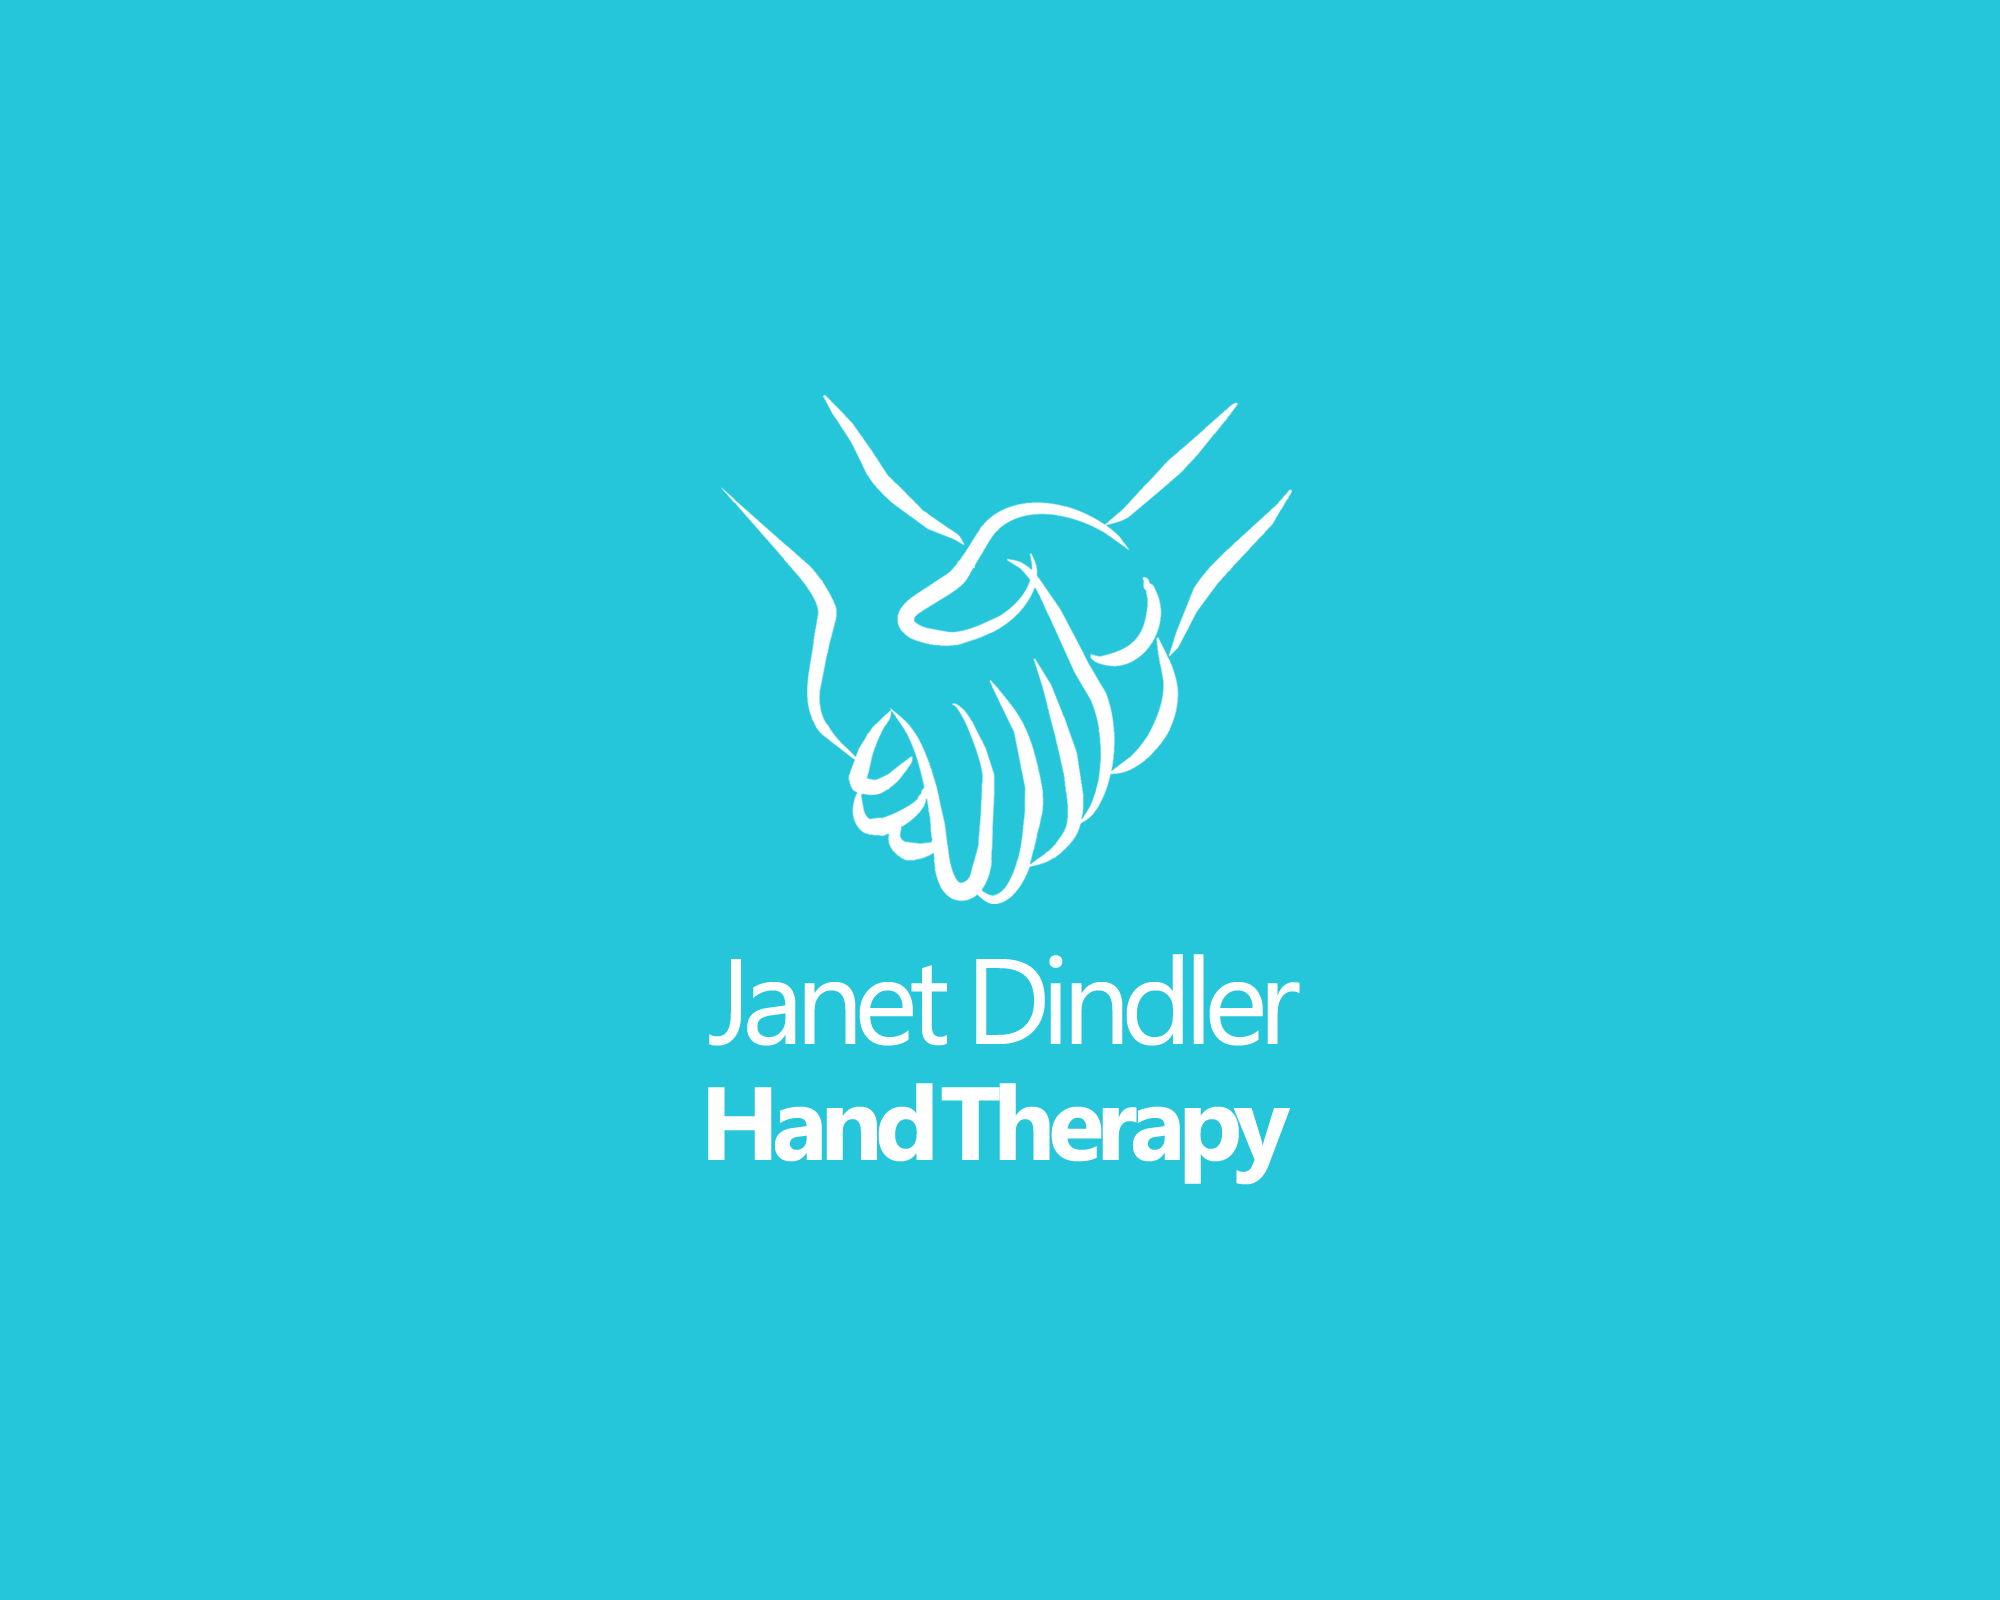 janet dindler hand therapy Logo